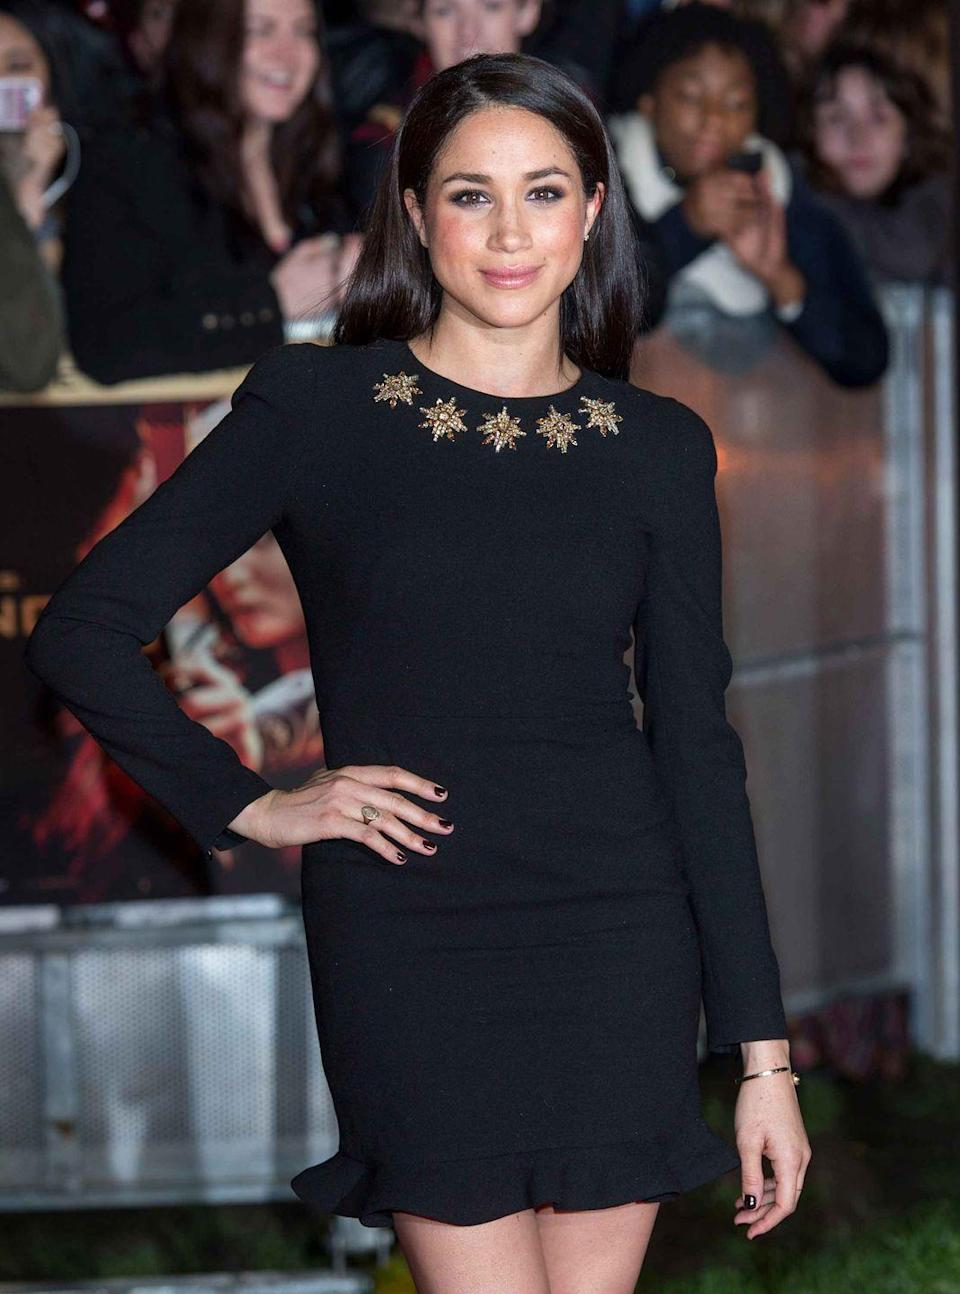 <p>Posing on the red carpet at the premiere of <em>Hunger Games: Catching Fire </em>in London, England.</p>